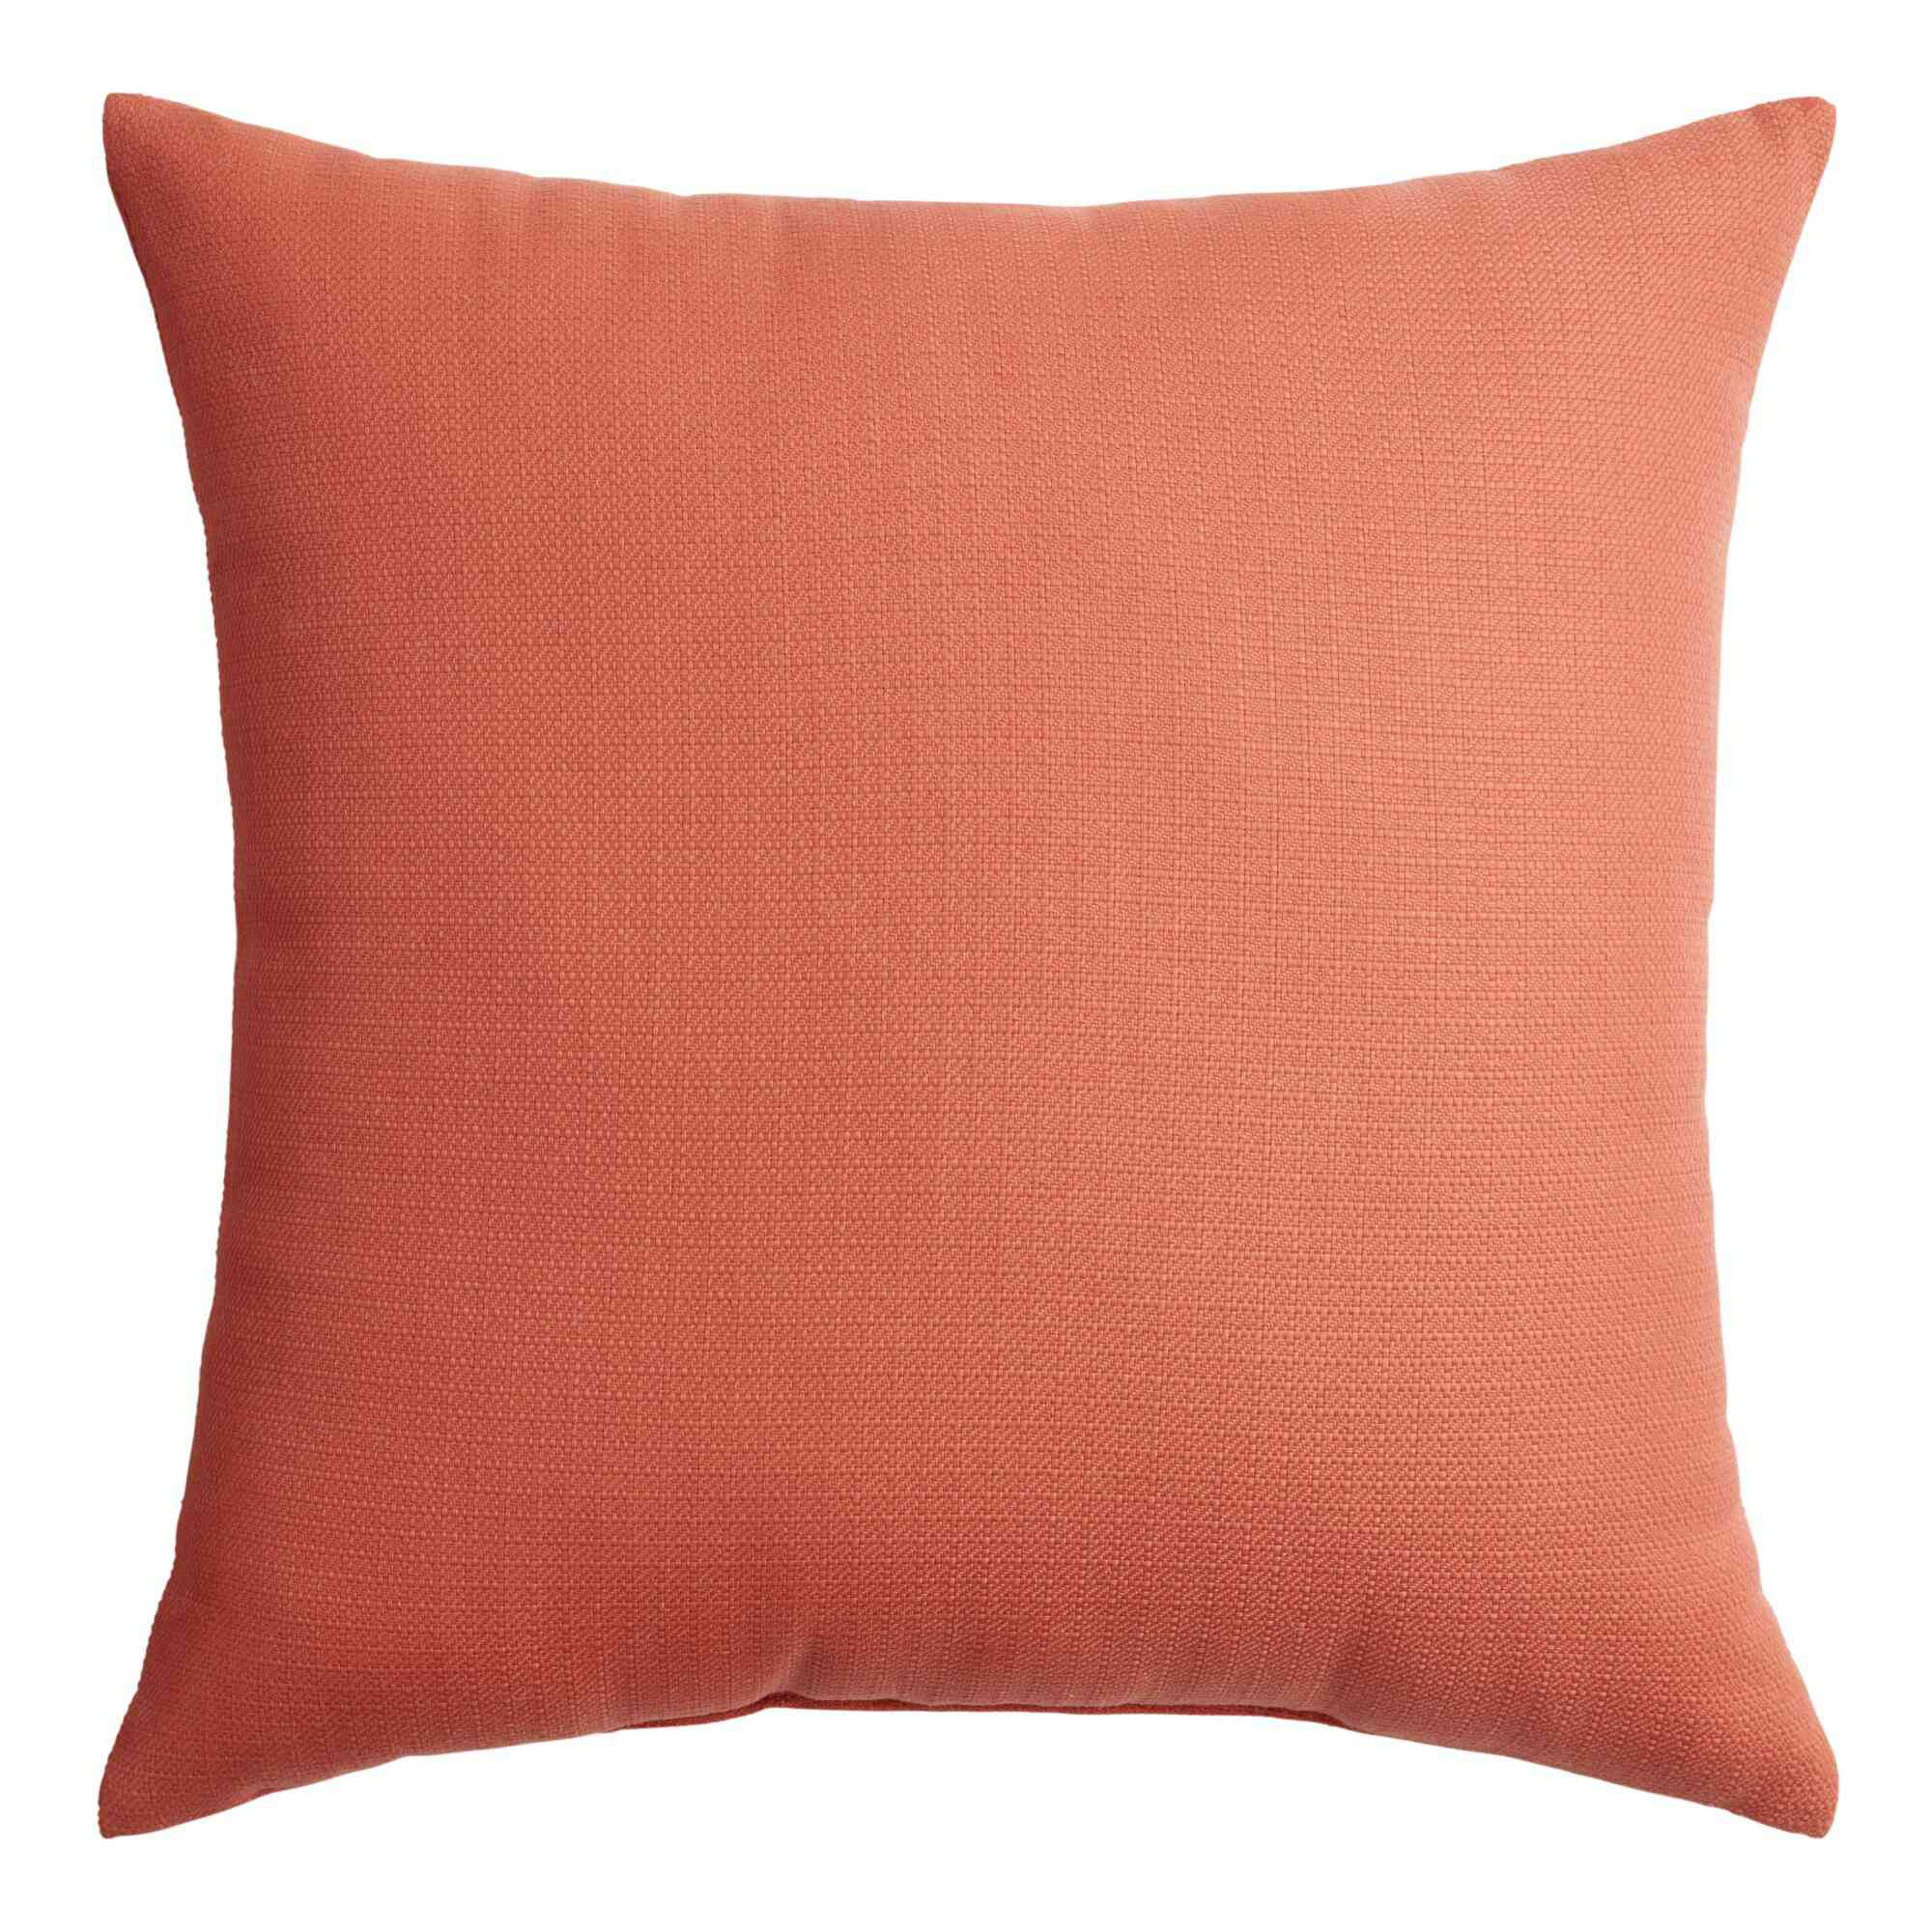 World Market Solid Outdoor Throw Pillow